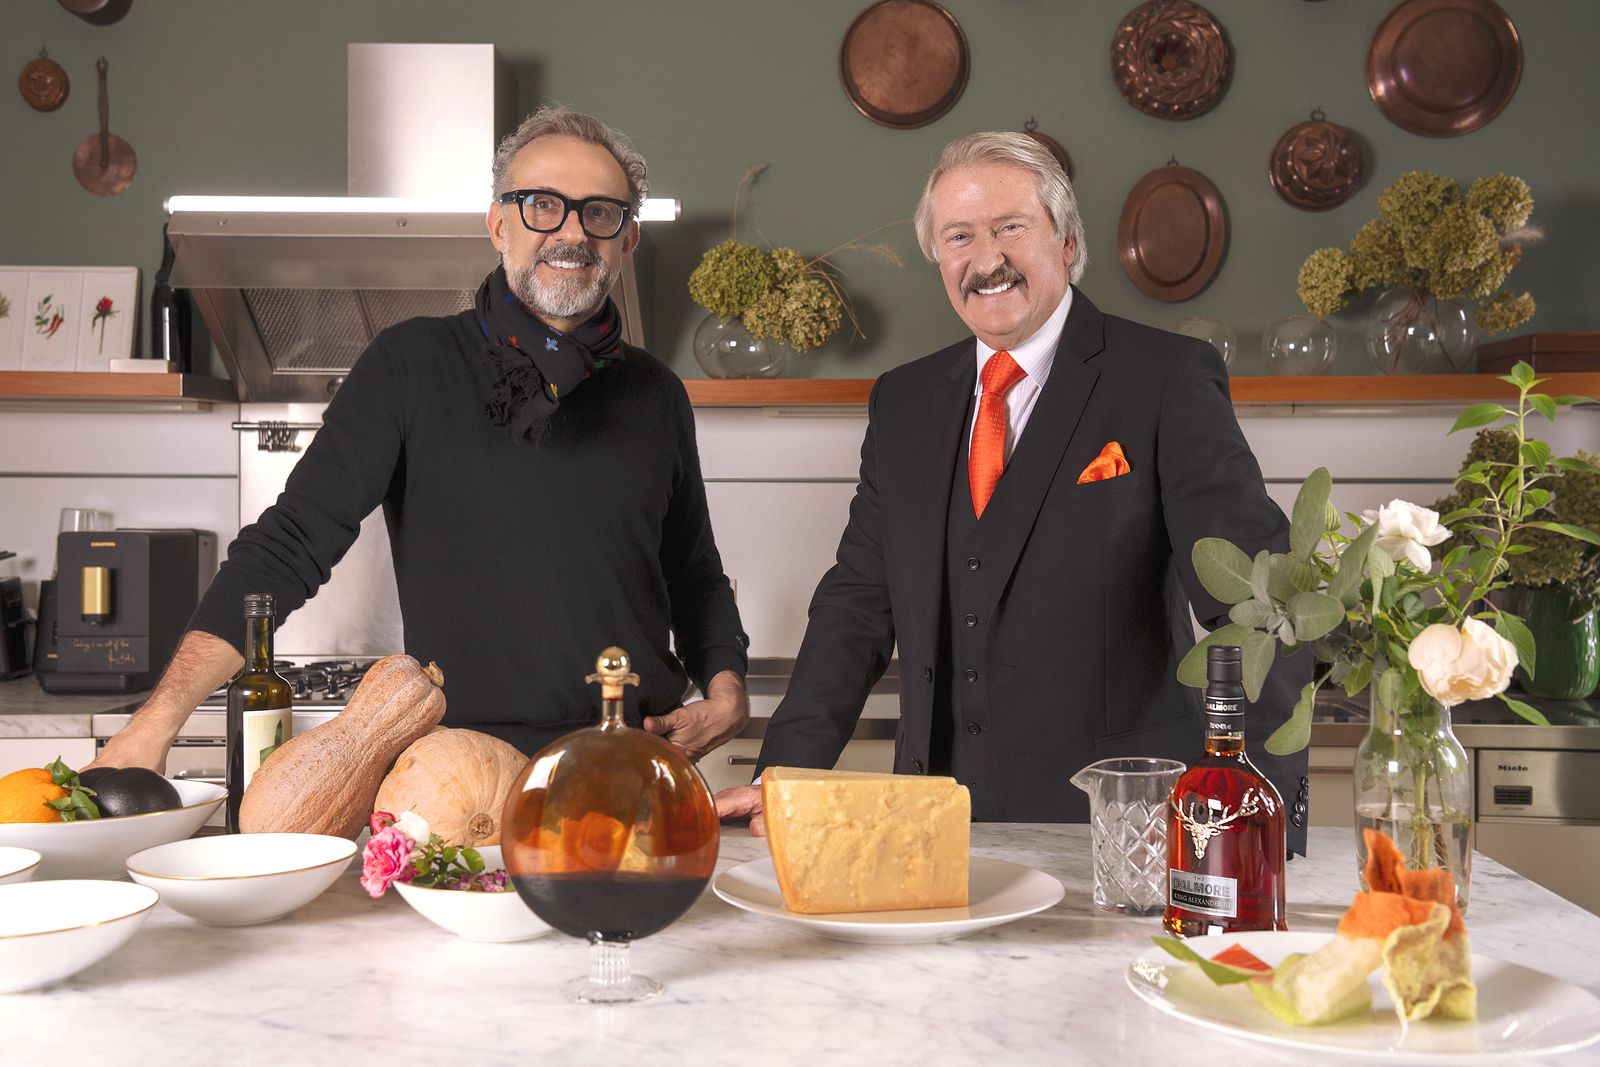 Massimo Bottura and Richard Paterson. (Photo: The Dalmore)